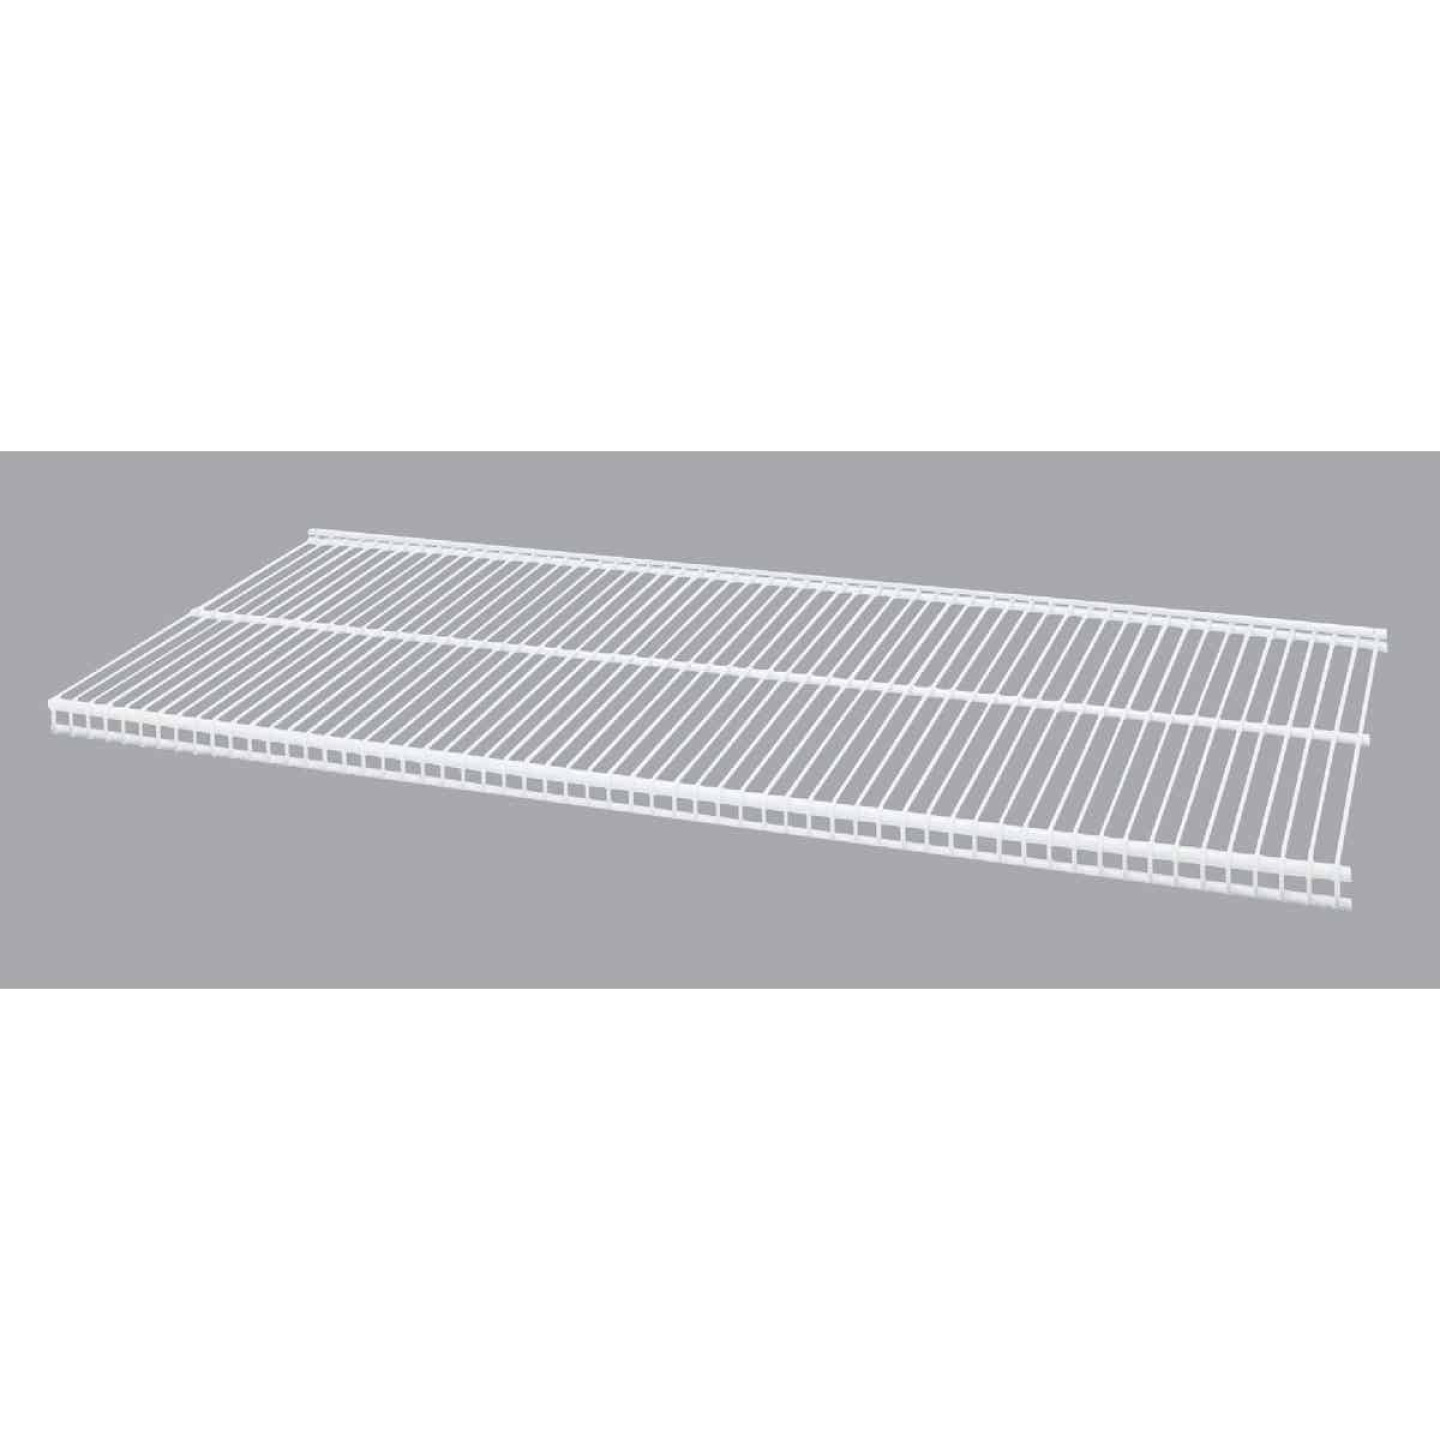 Organized Living FreedomRail 3 Ft. W. x 12 in. D Profile Ventilated Closet Shelf, White Image 1